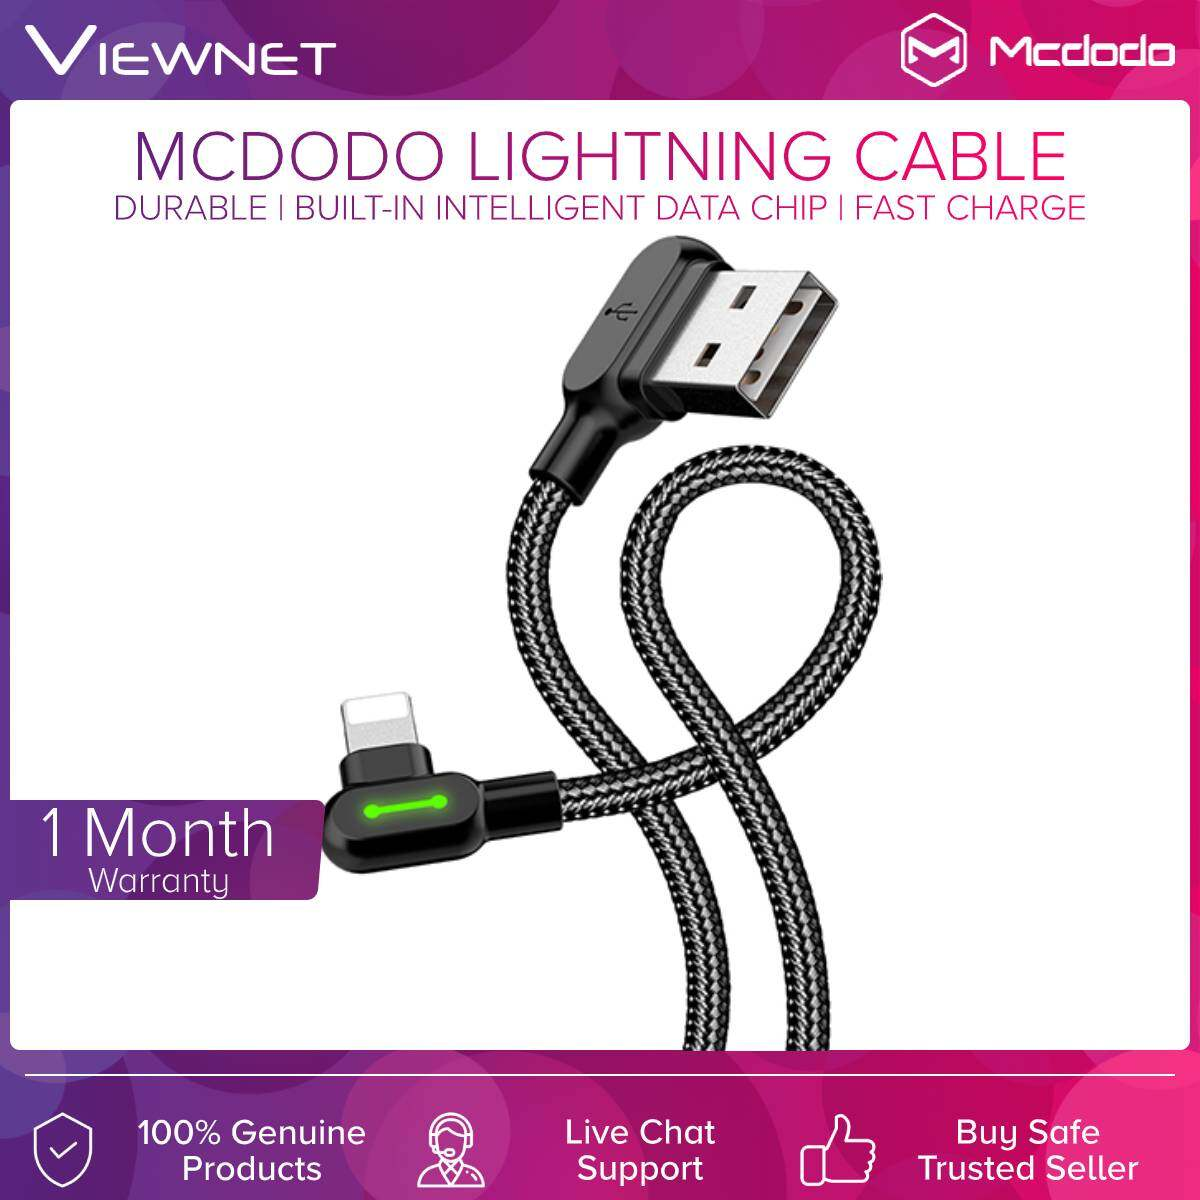 Mcdodo Lightning USB 90° 1.2M Black Cable With Reversible USB Interface Design, Charging Convenience And Built-in Intelligent Data Chip (CAB-CA467-1)